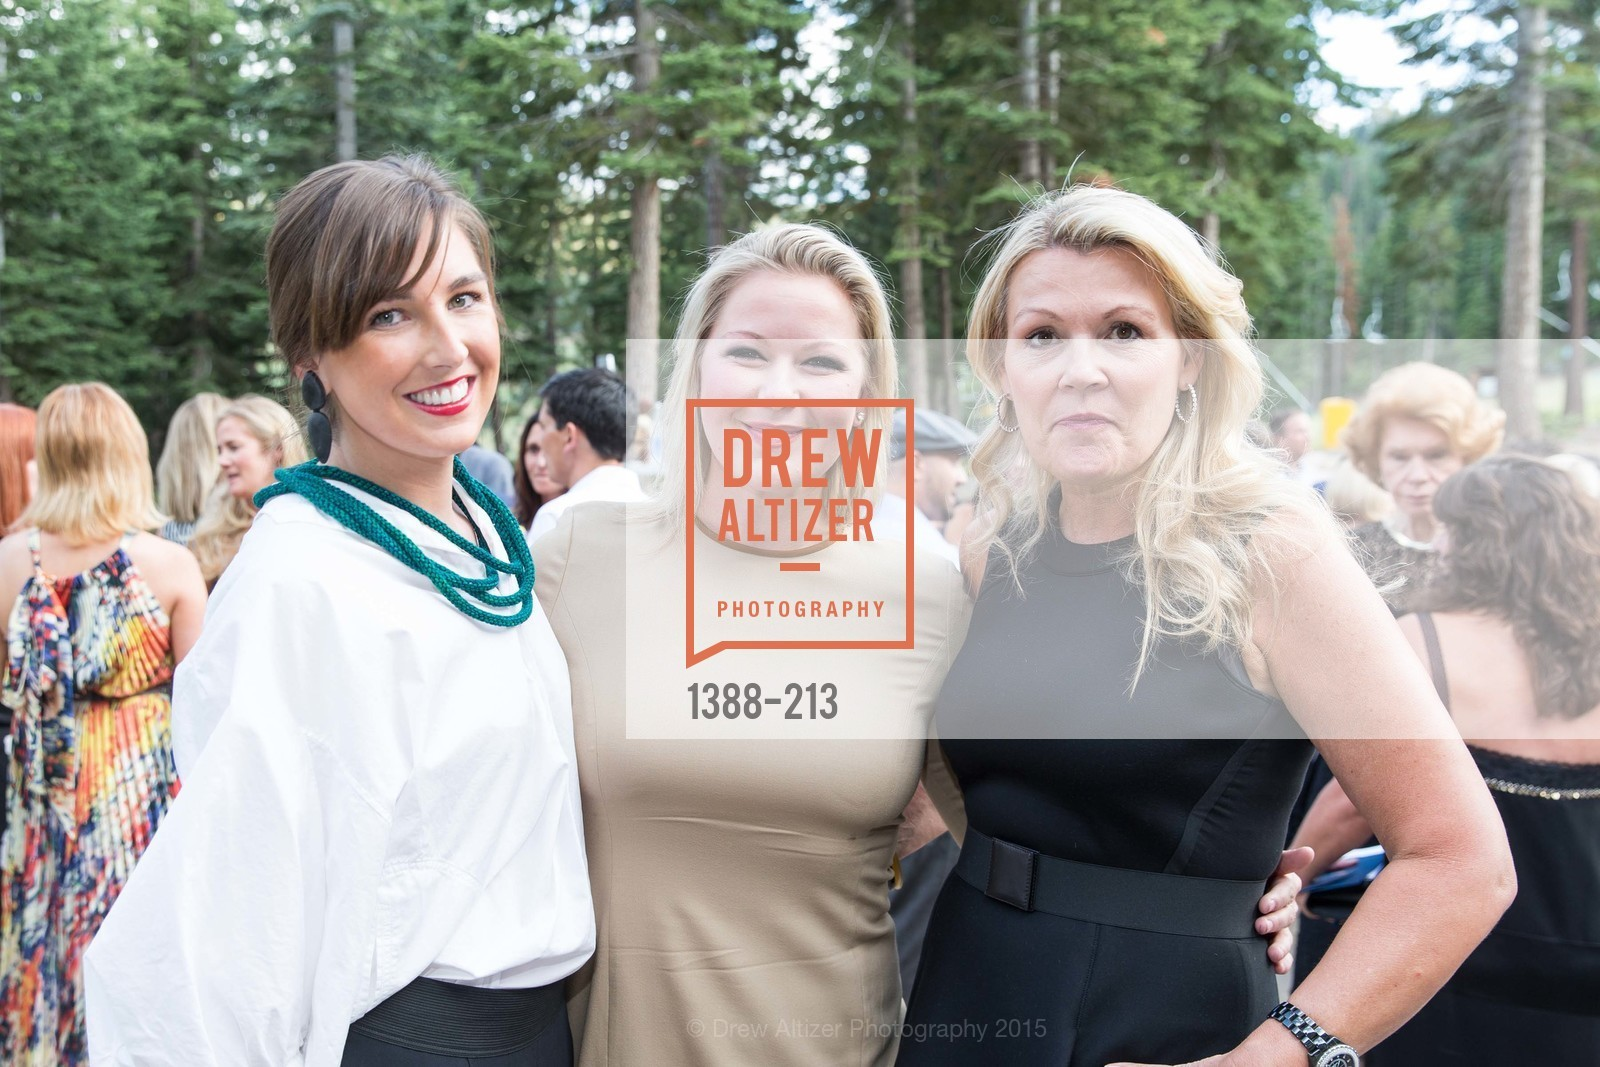 Justine Macfee, Liz Curtis, Catherine Macfee, League to Save Lake Tahoe Sponsor Cocktail Party, Ritz-Carlton, Lake Tahoe, July 31st, 2015,Drew Altizer, Drew Altizer Photography, full-service agency, private events, San Francisco photographer, photographer california